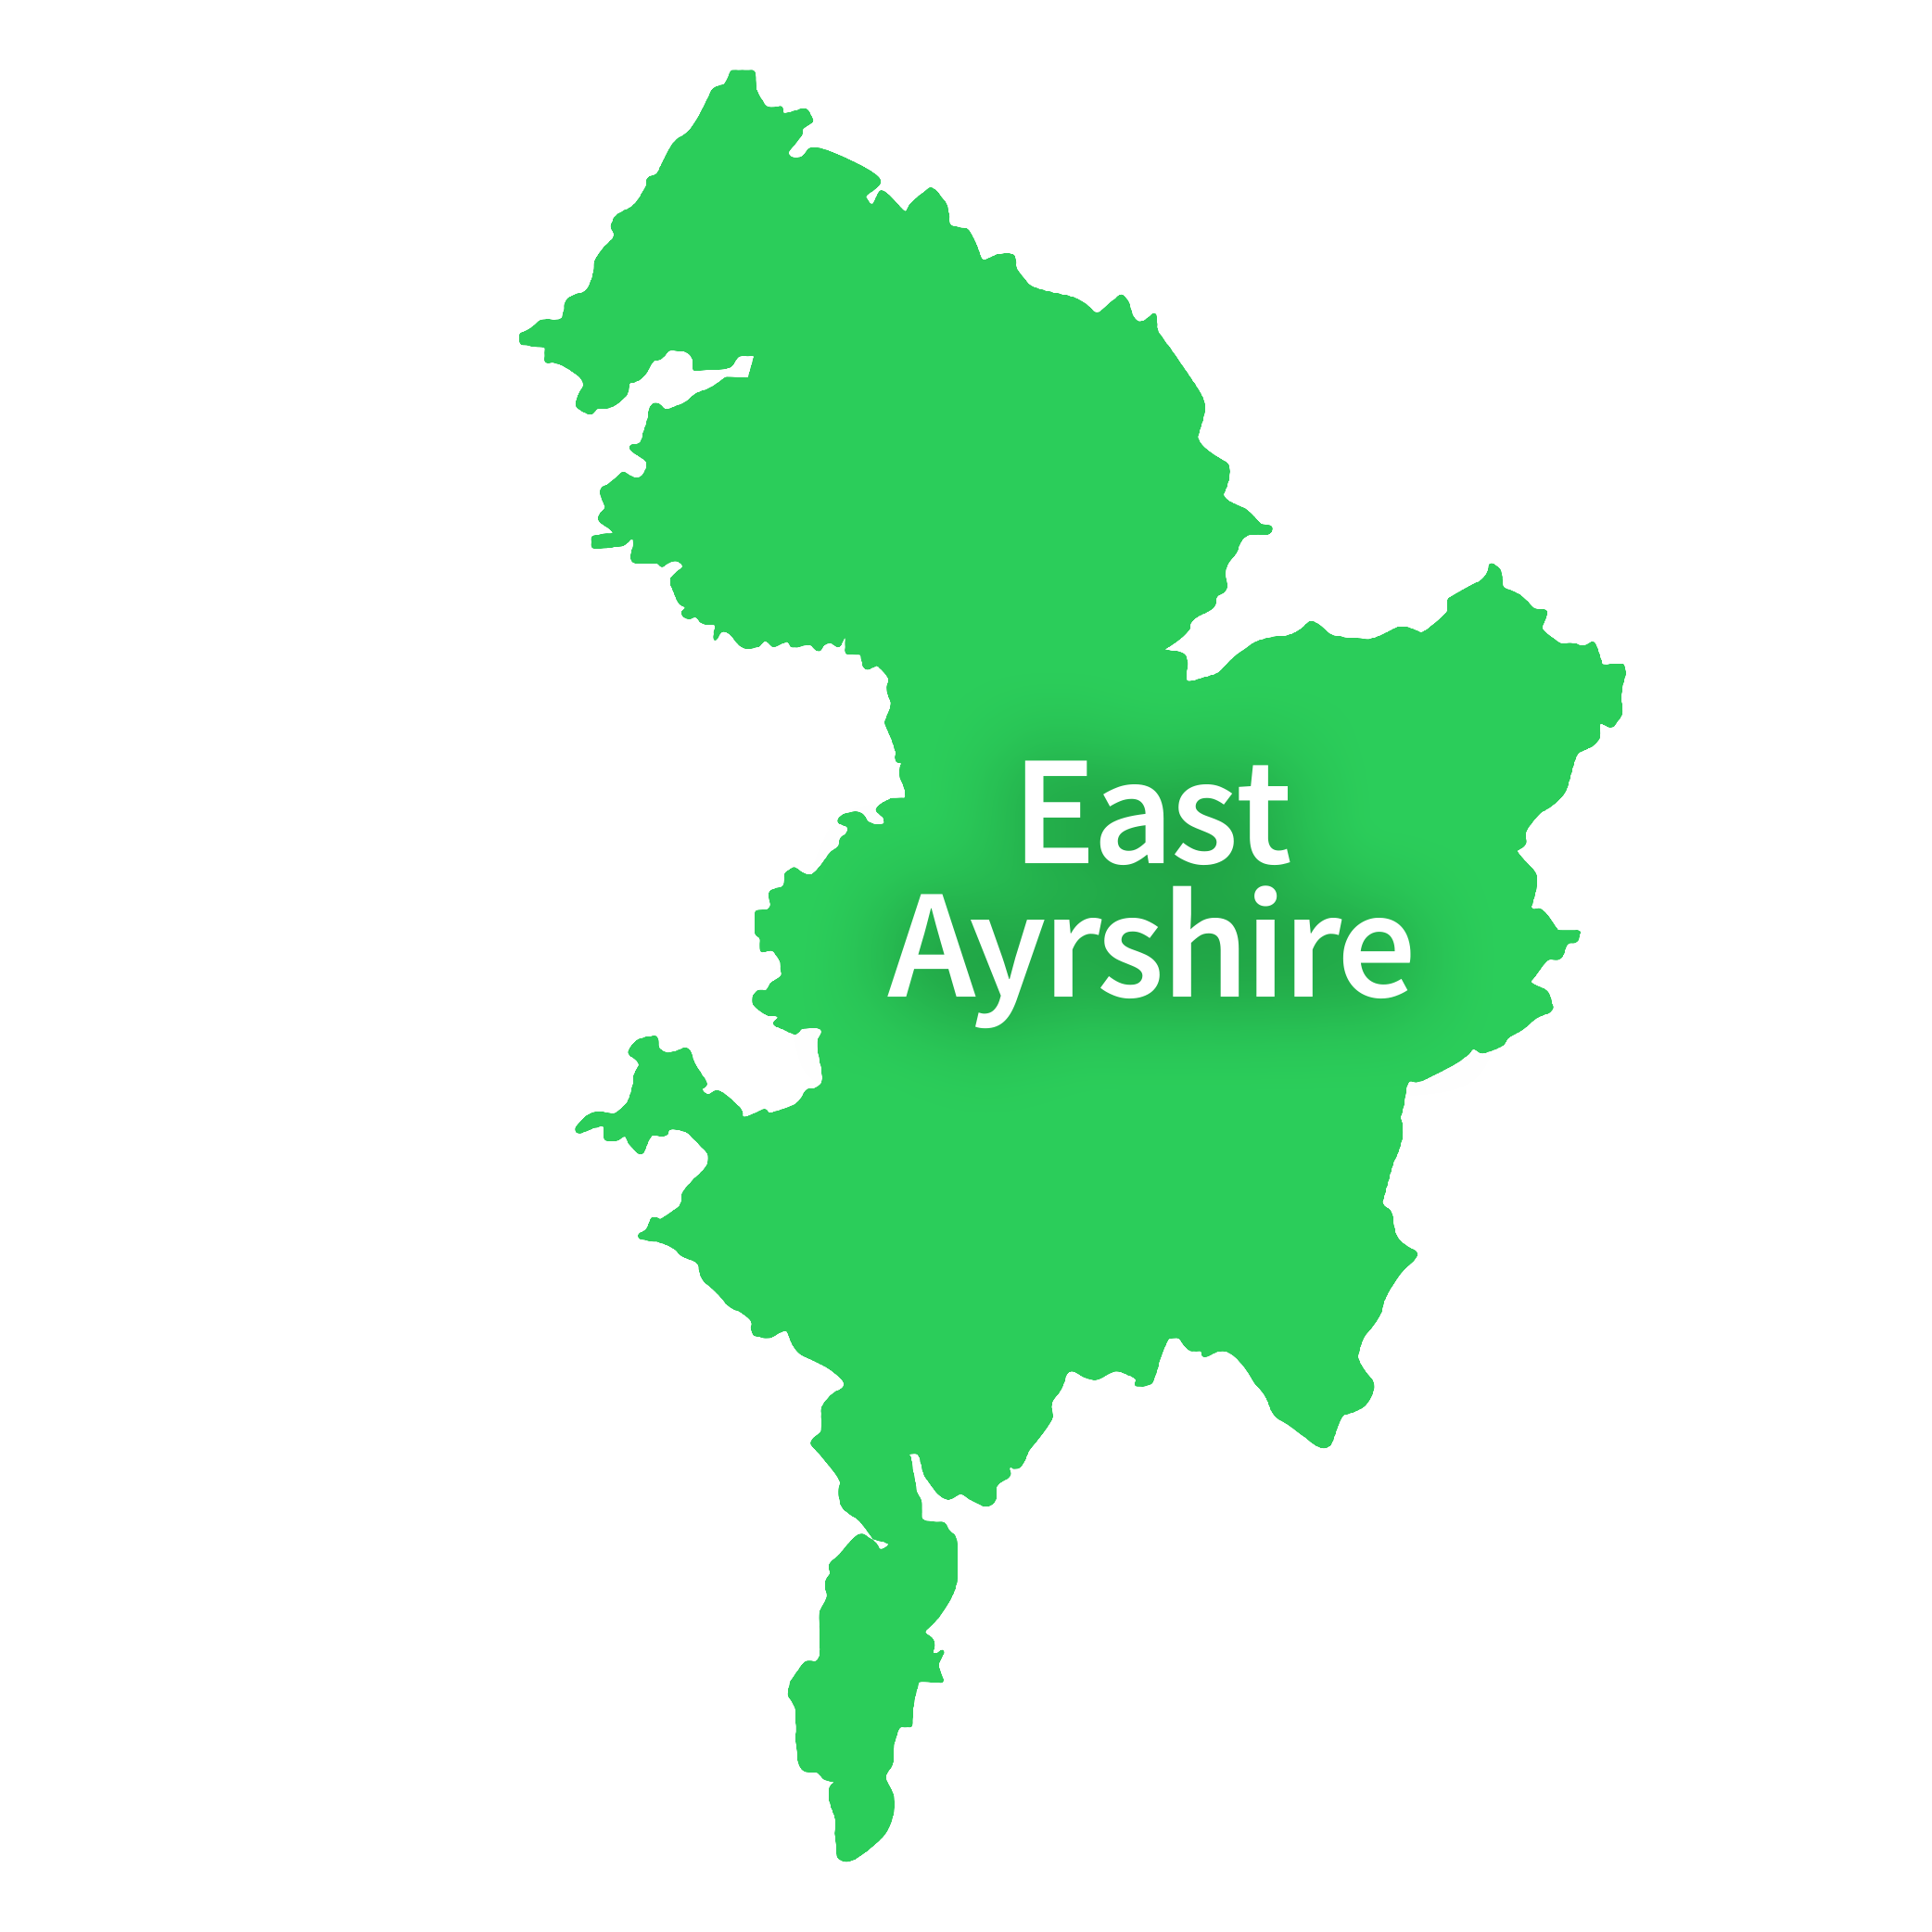 Map of East Ayrshire